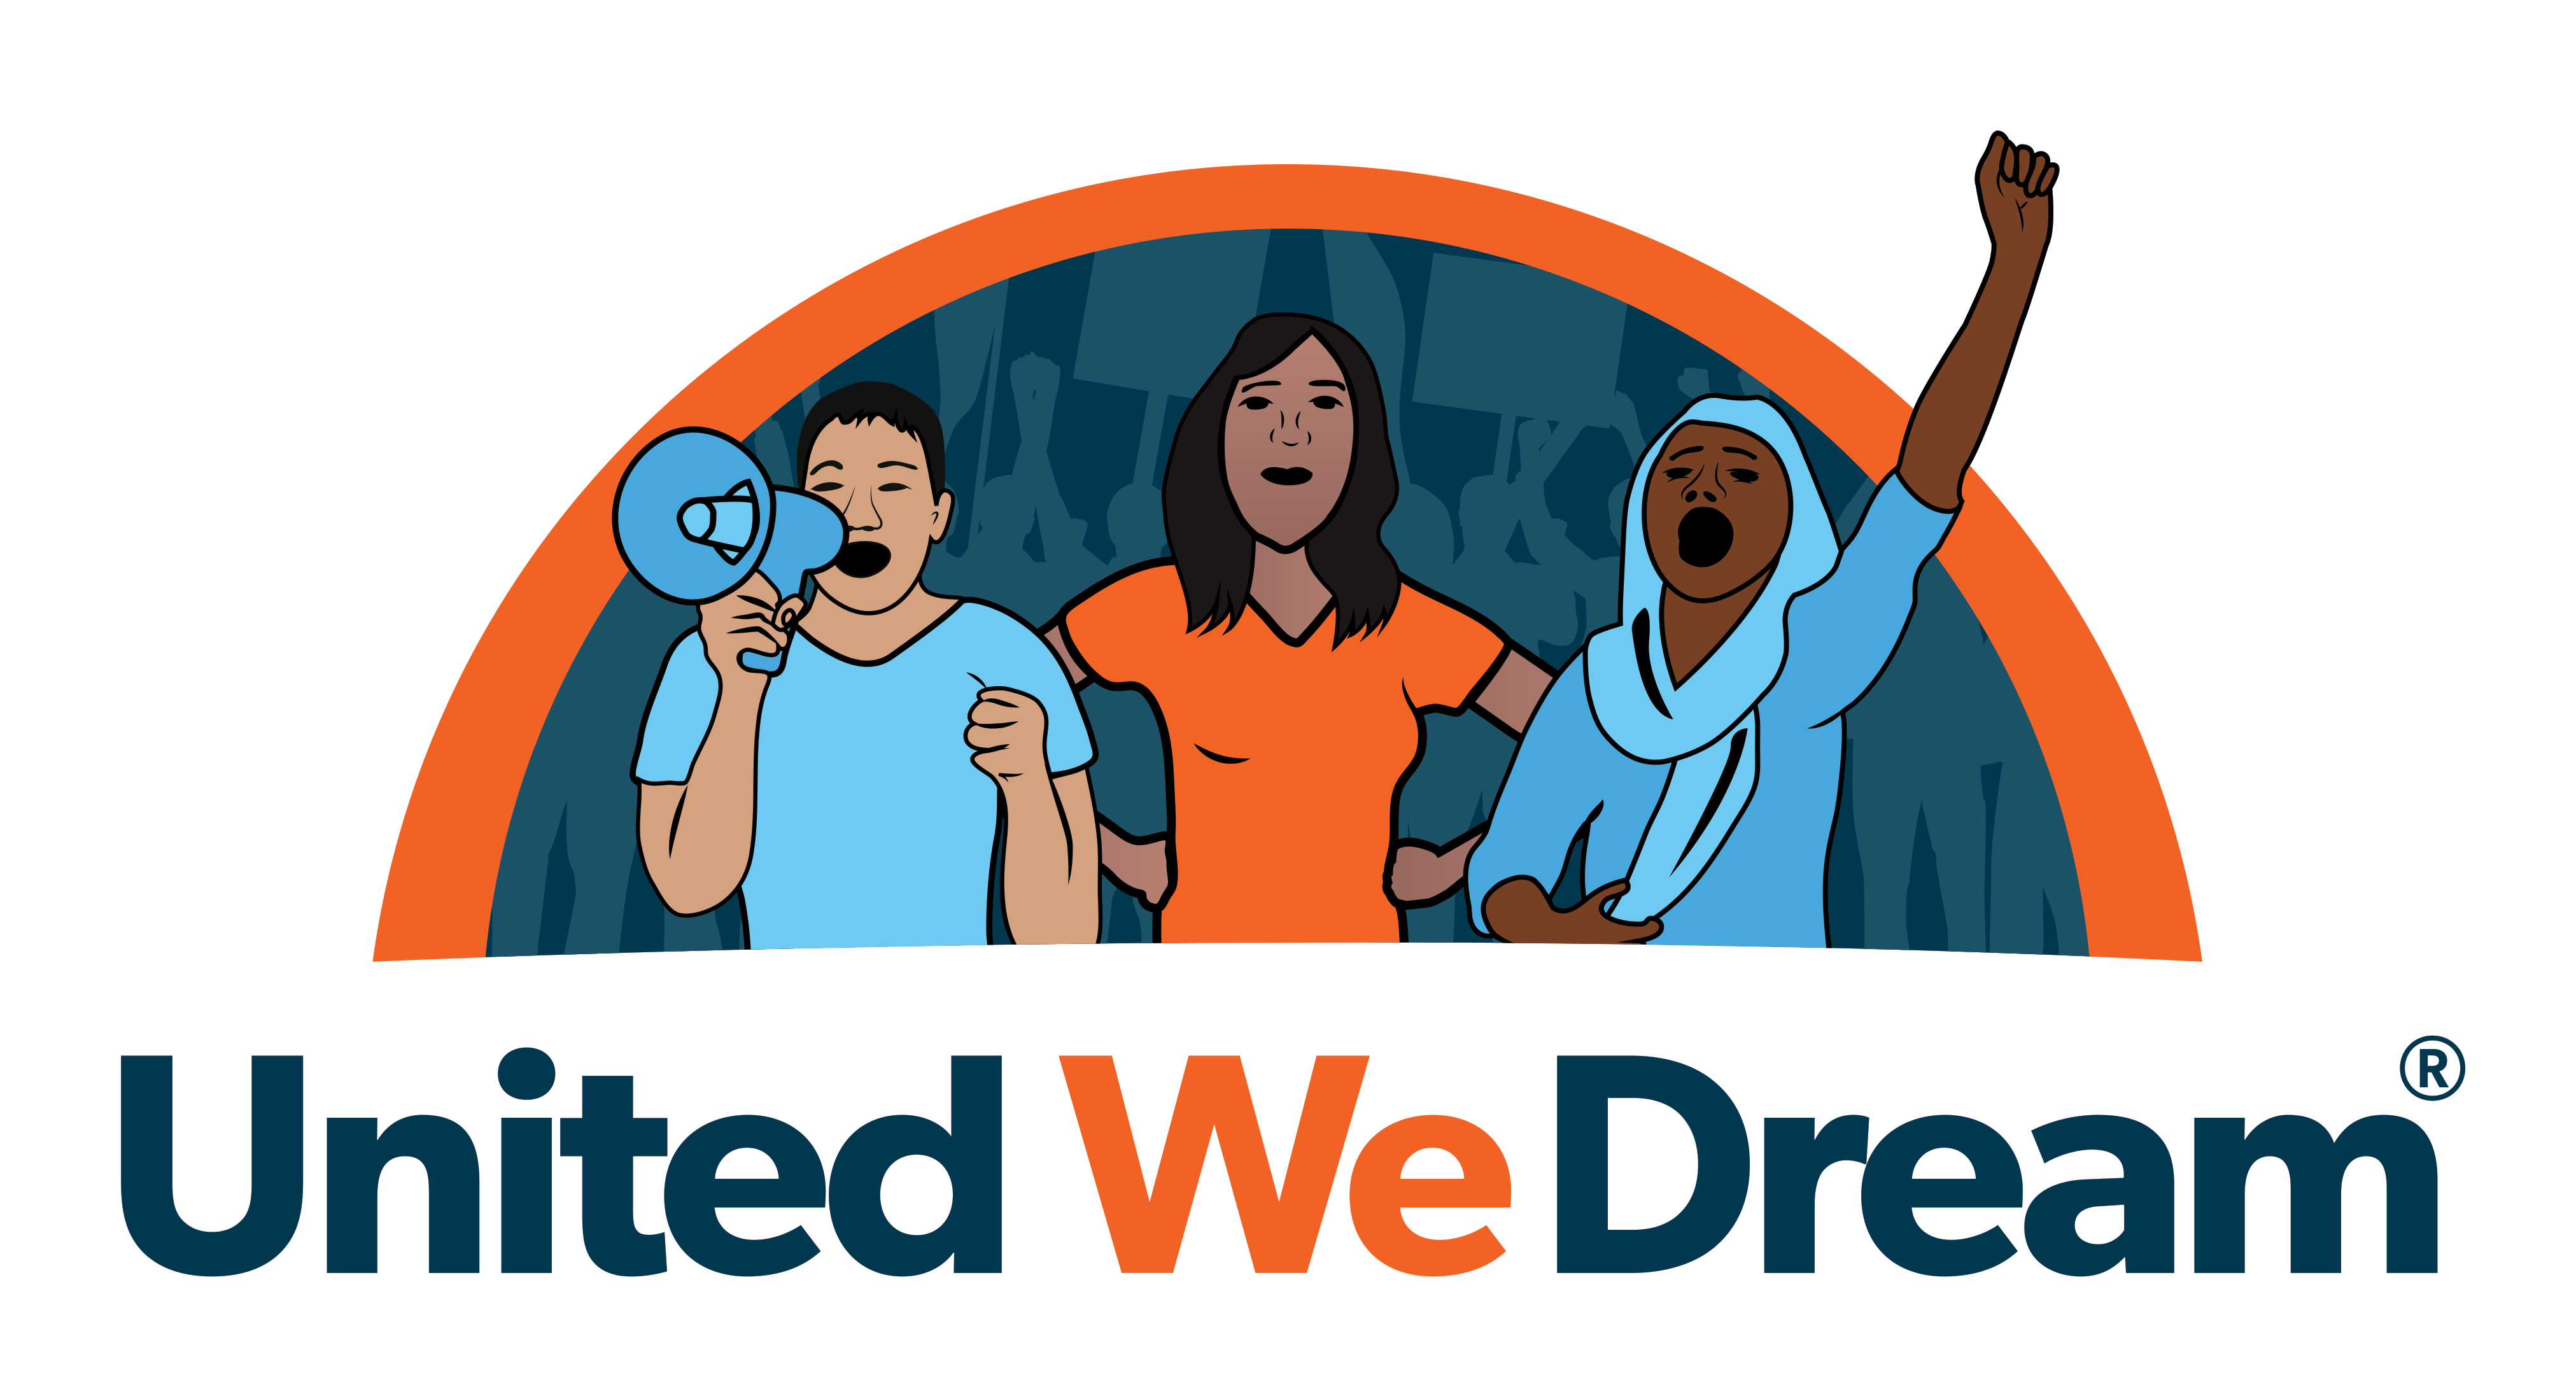 Dreams clipart dream team. United we the largest